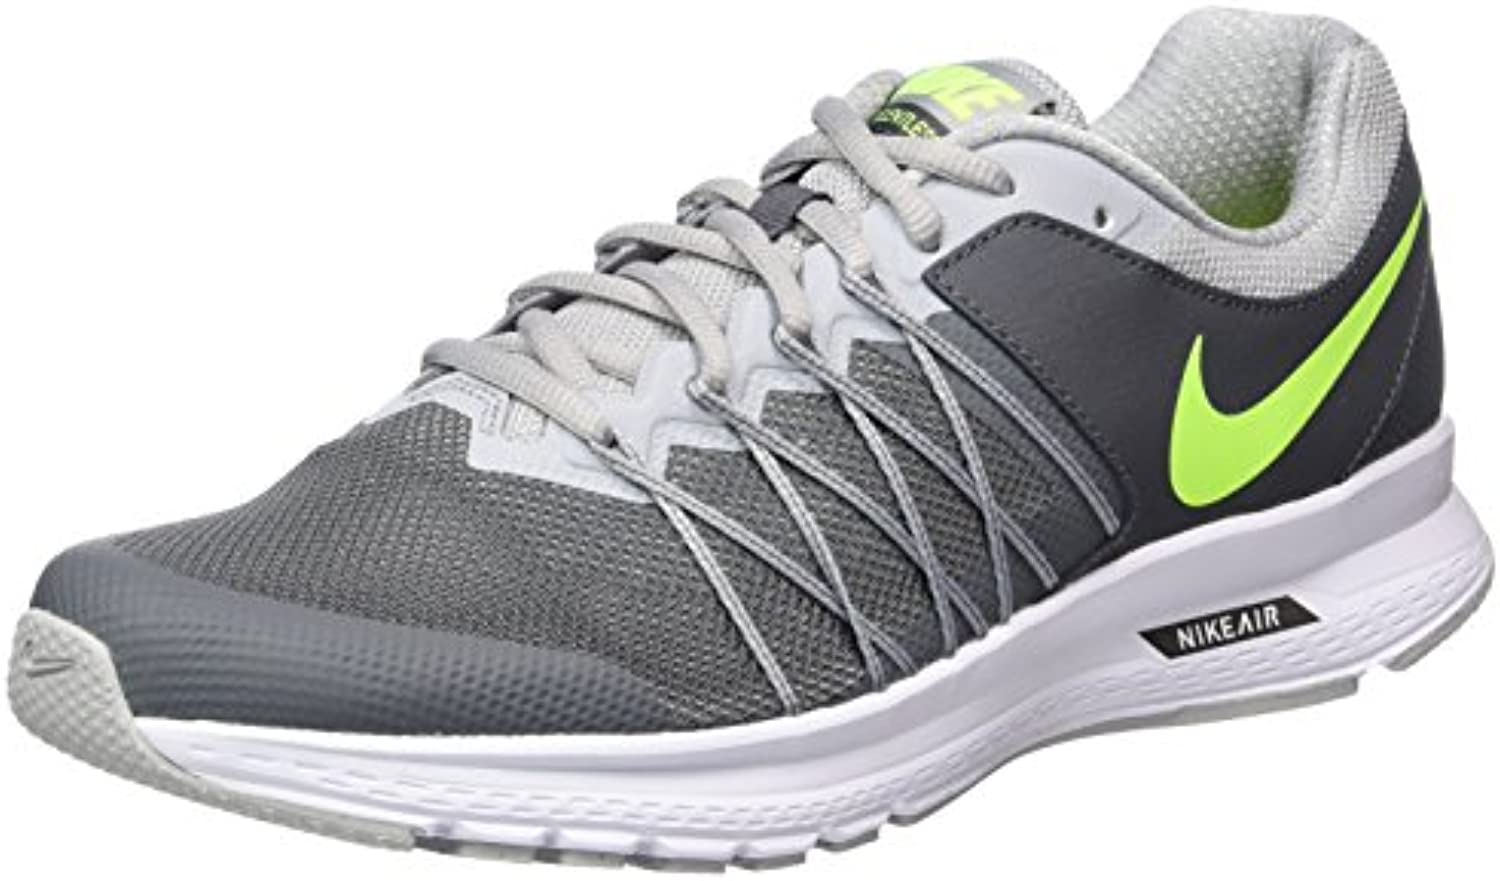 Nike AIR RELENTLESS 6 Herren Laufschuhe